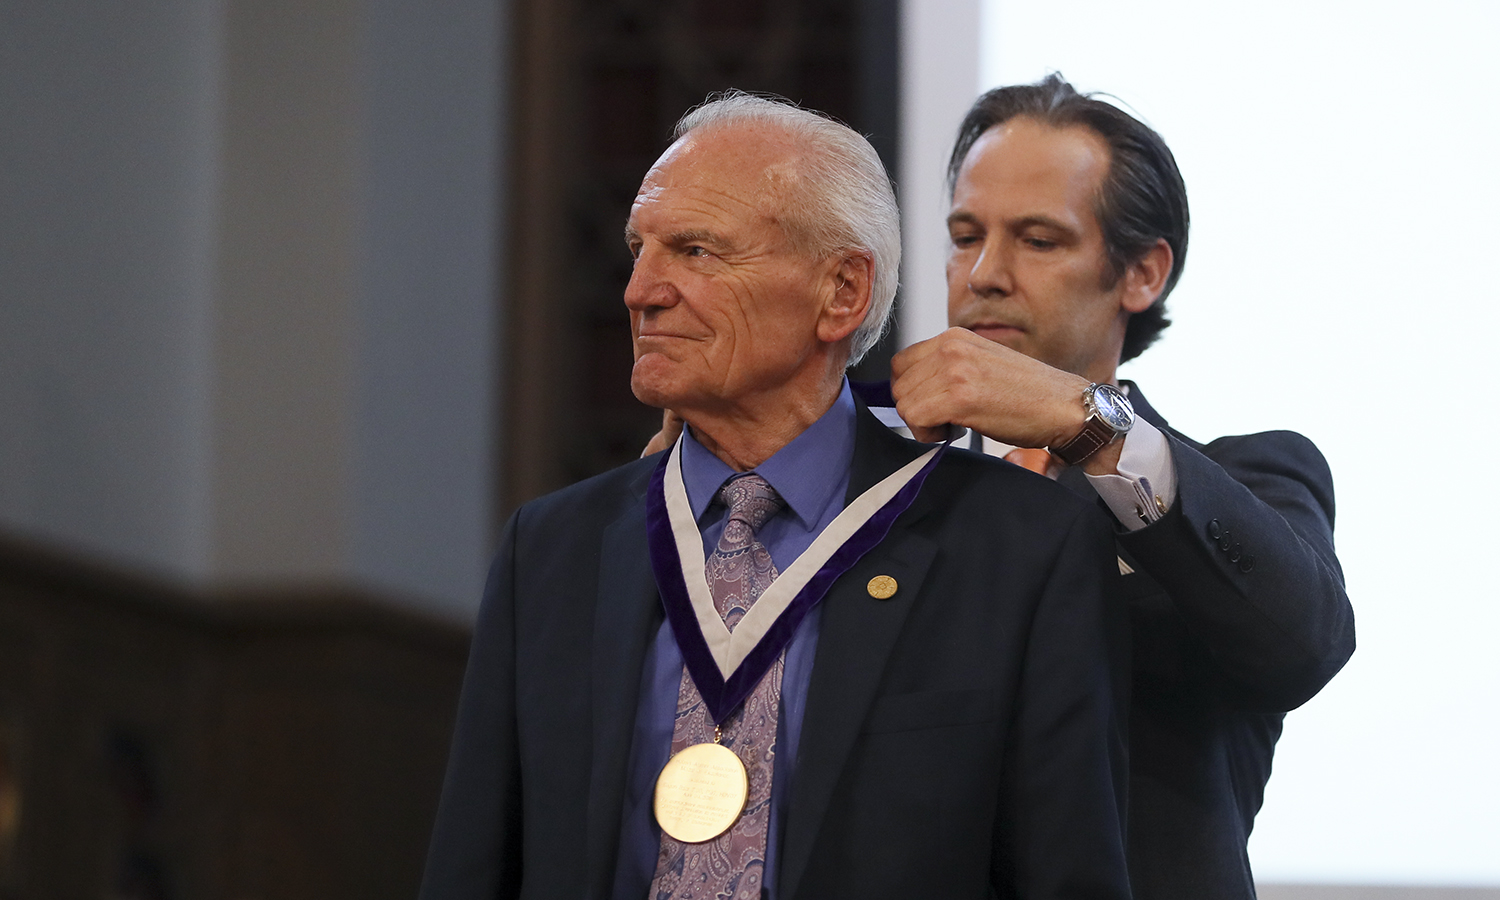 During Charter Day, Assistant Vice President for Advancement and Alumni Relations Jared Weeden '91 presents the Hobart Medal of Excellence to Hobart Dean and Professor of Philosophy Eugen Baer P'95, P'97.